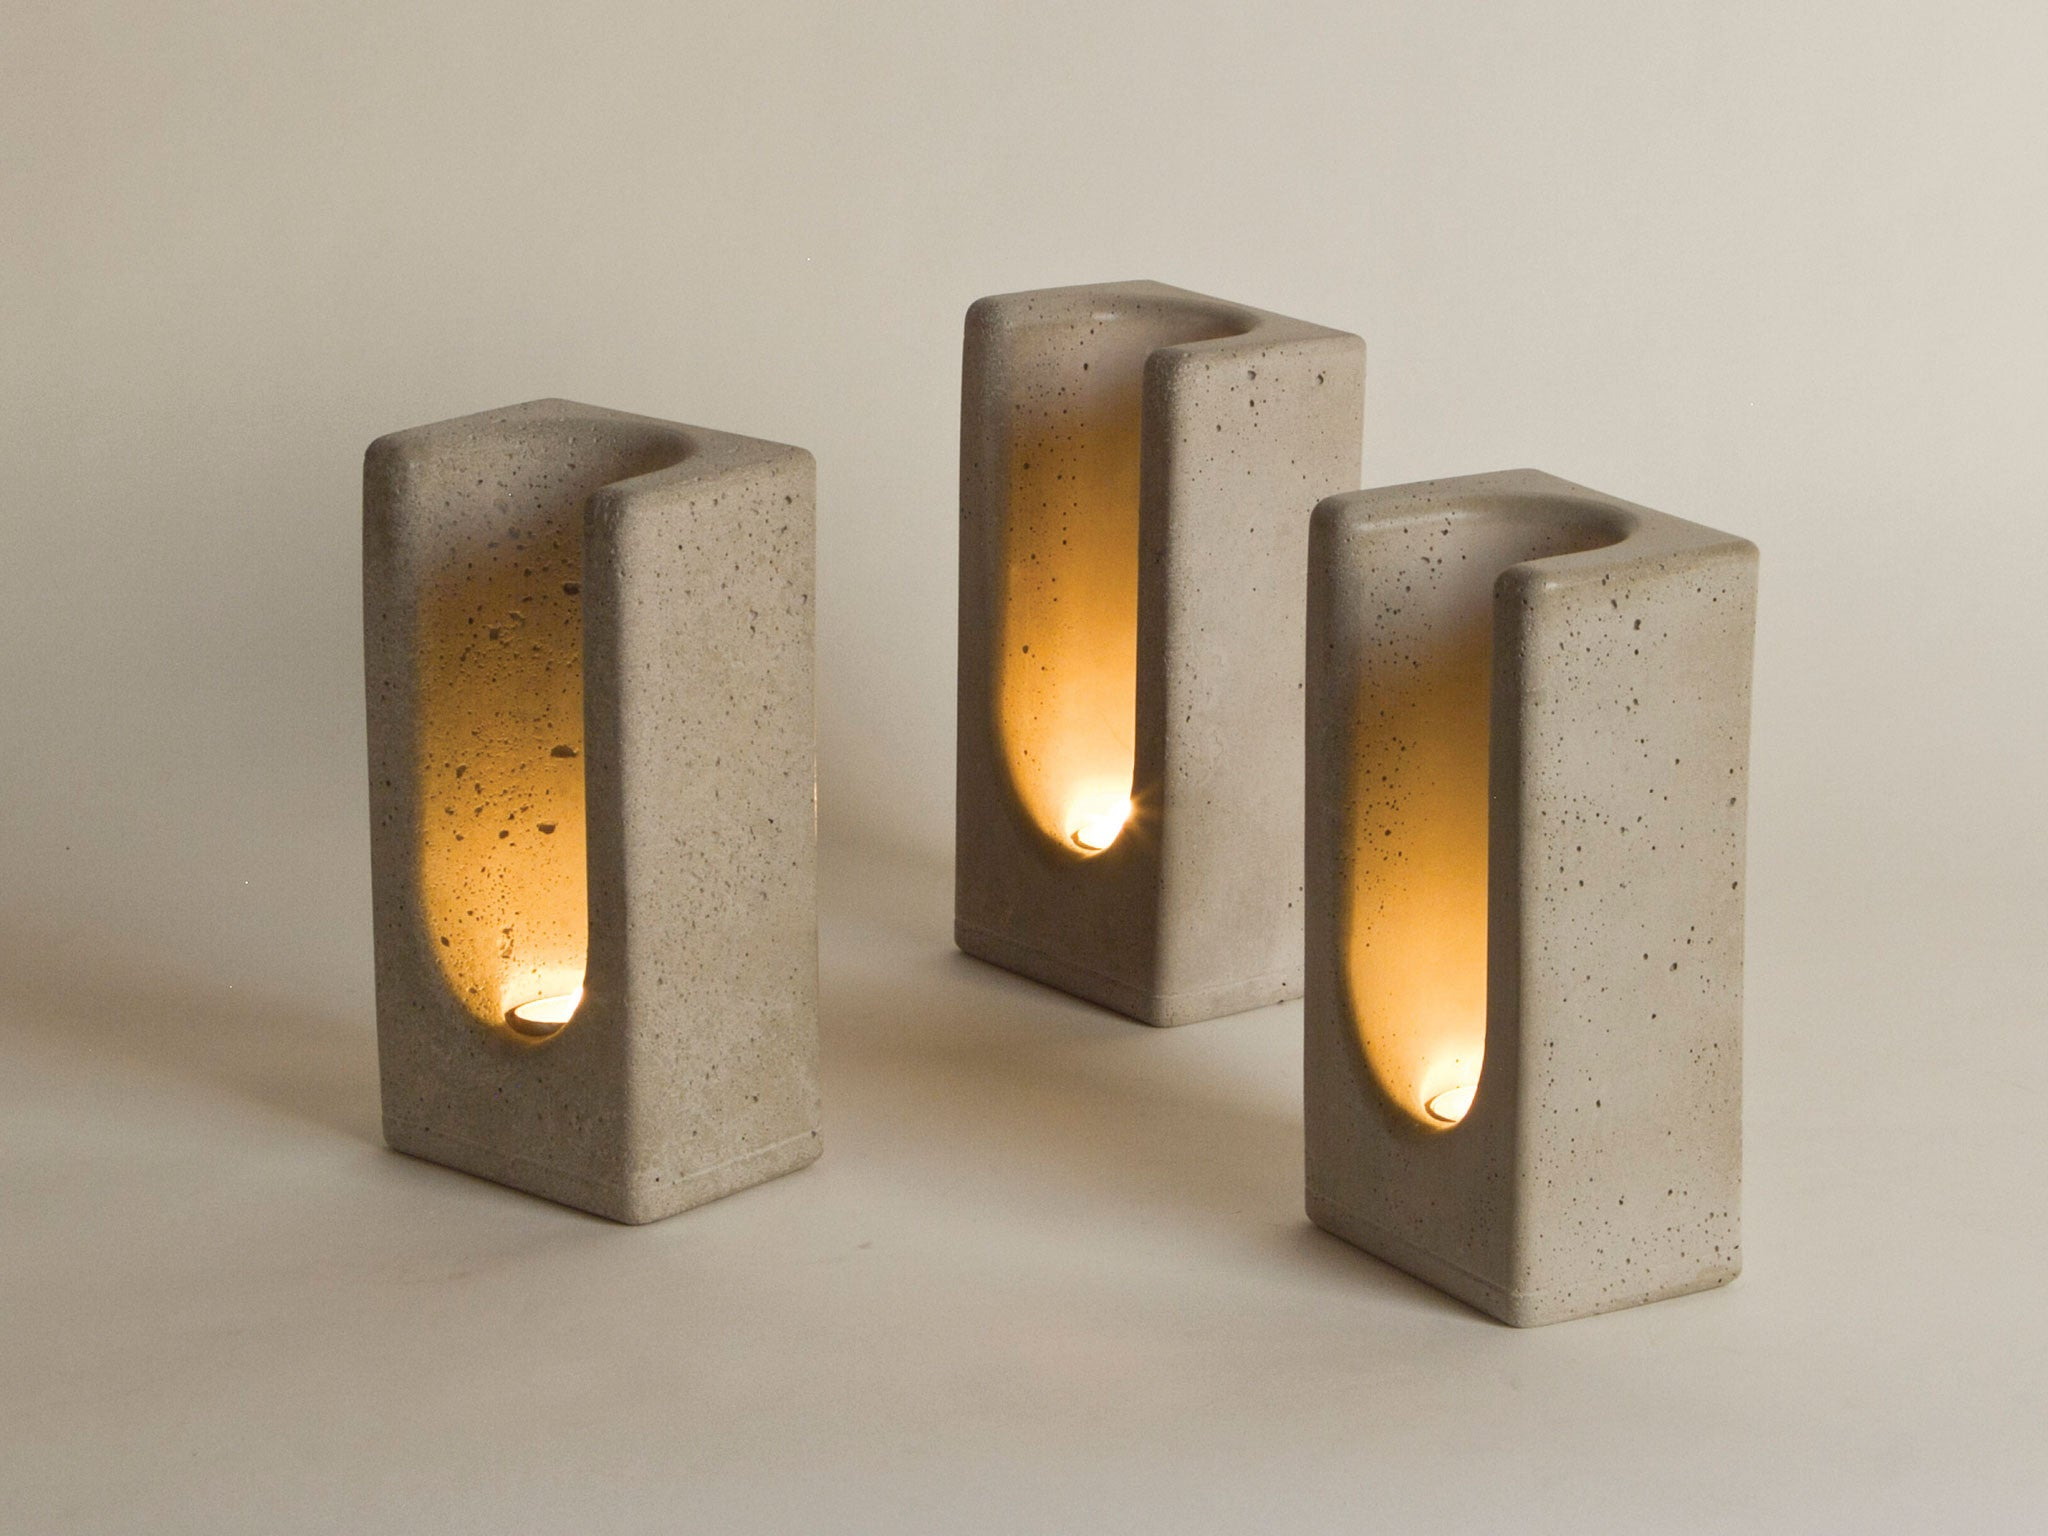 Tealight Totem in Concrete